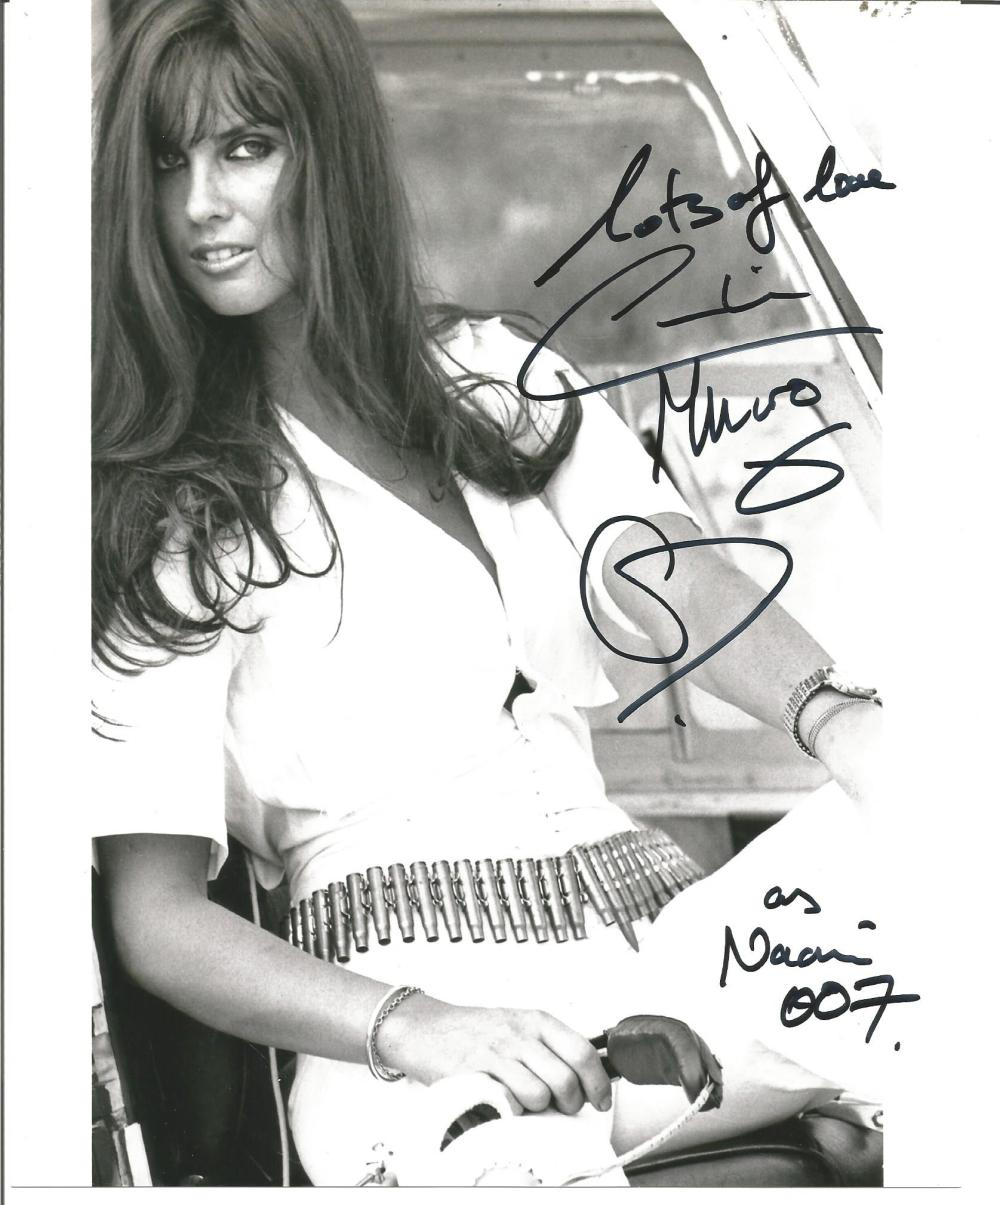 Caroline Munro signed 10x8 b/w photo from The Spy who loved me. Good Condition. All signed pieces